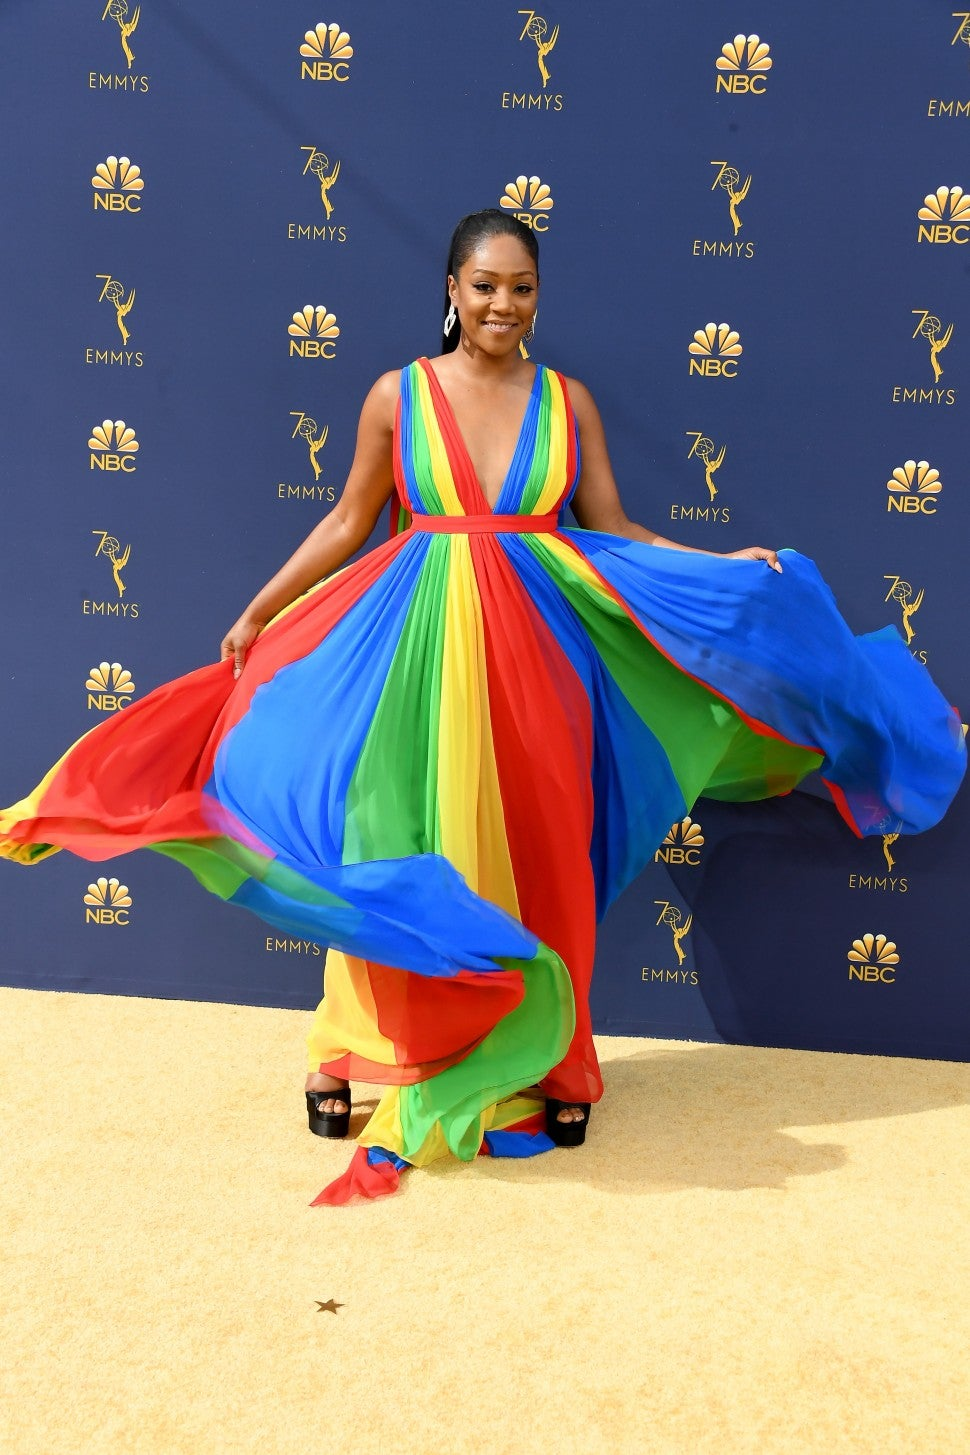 Tiffany Haddish twirling Emmys 2018